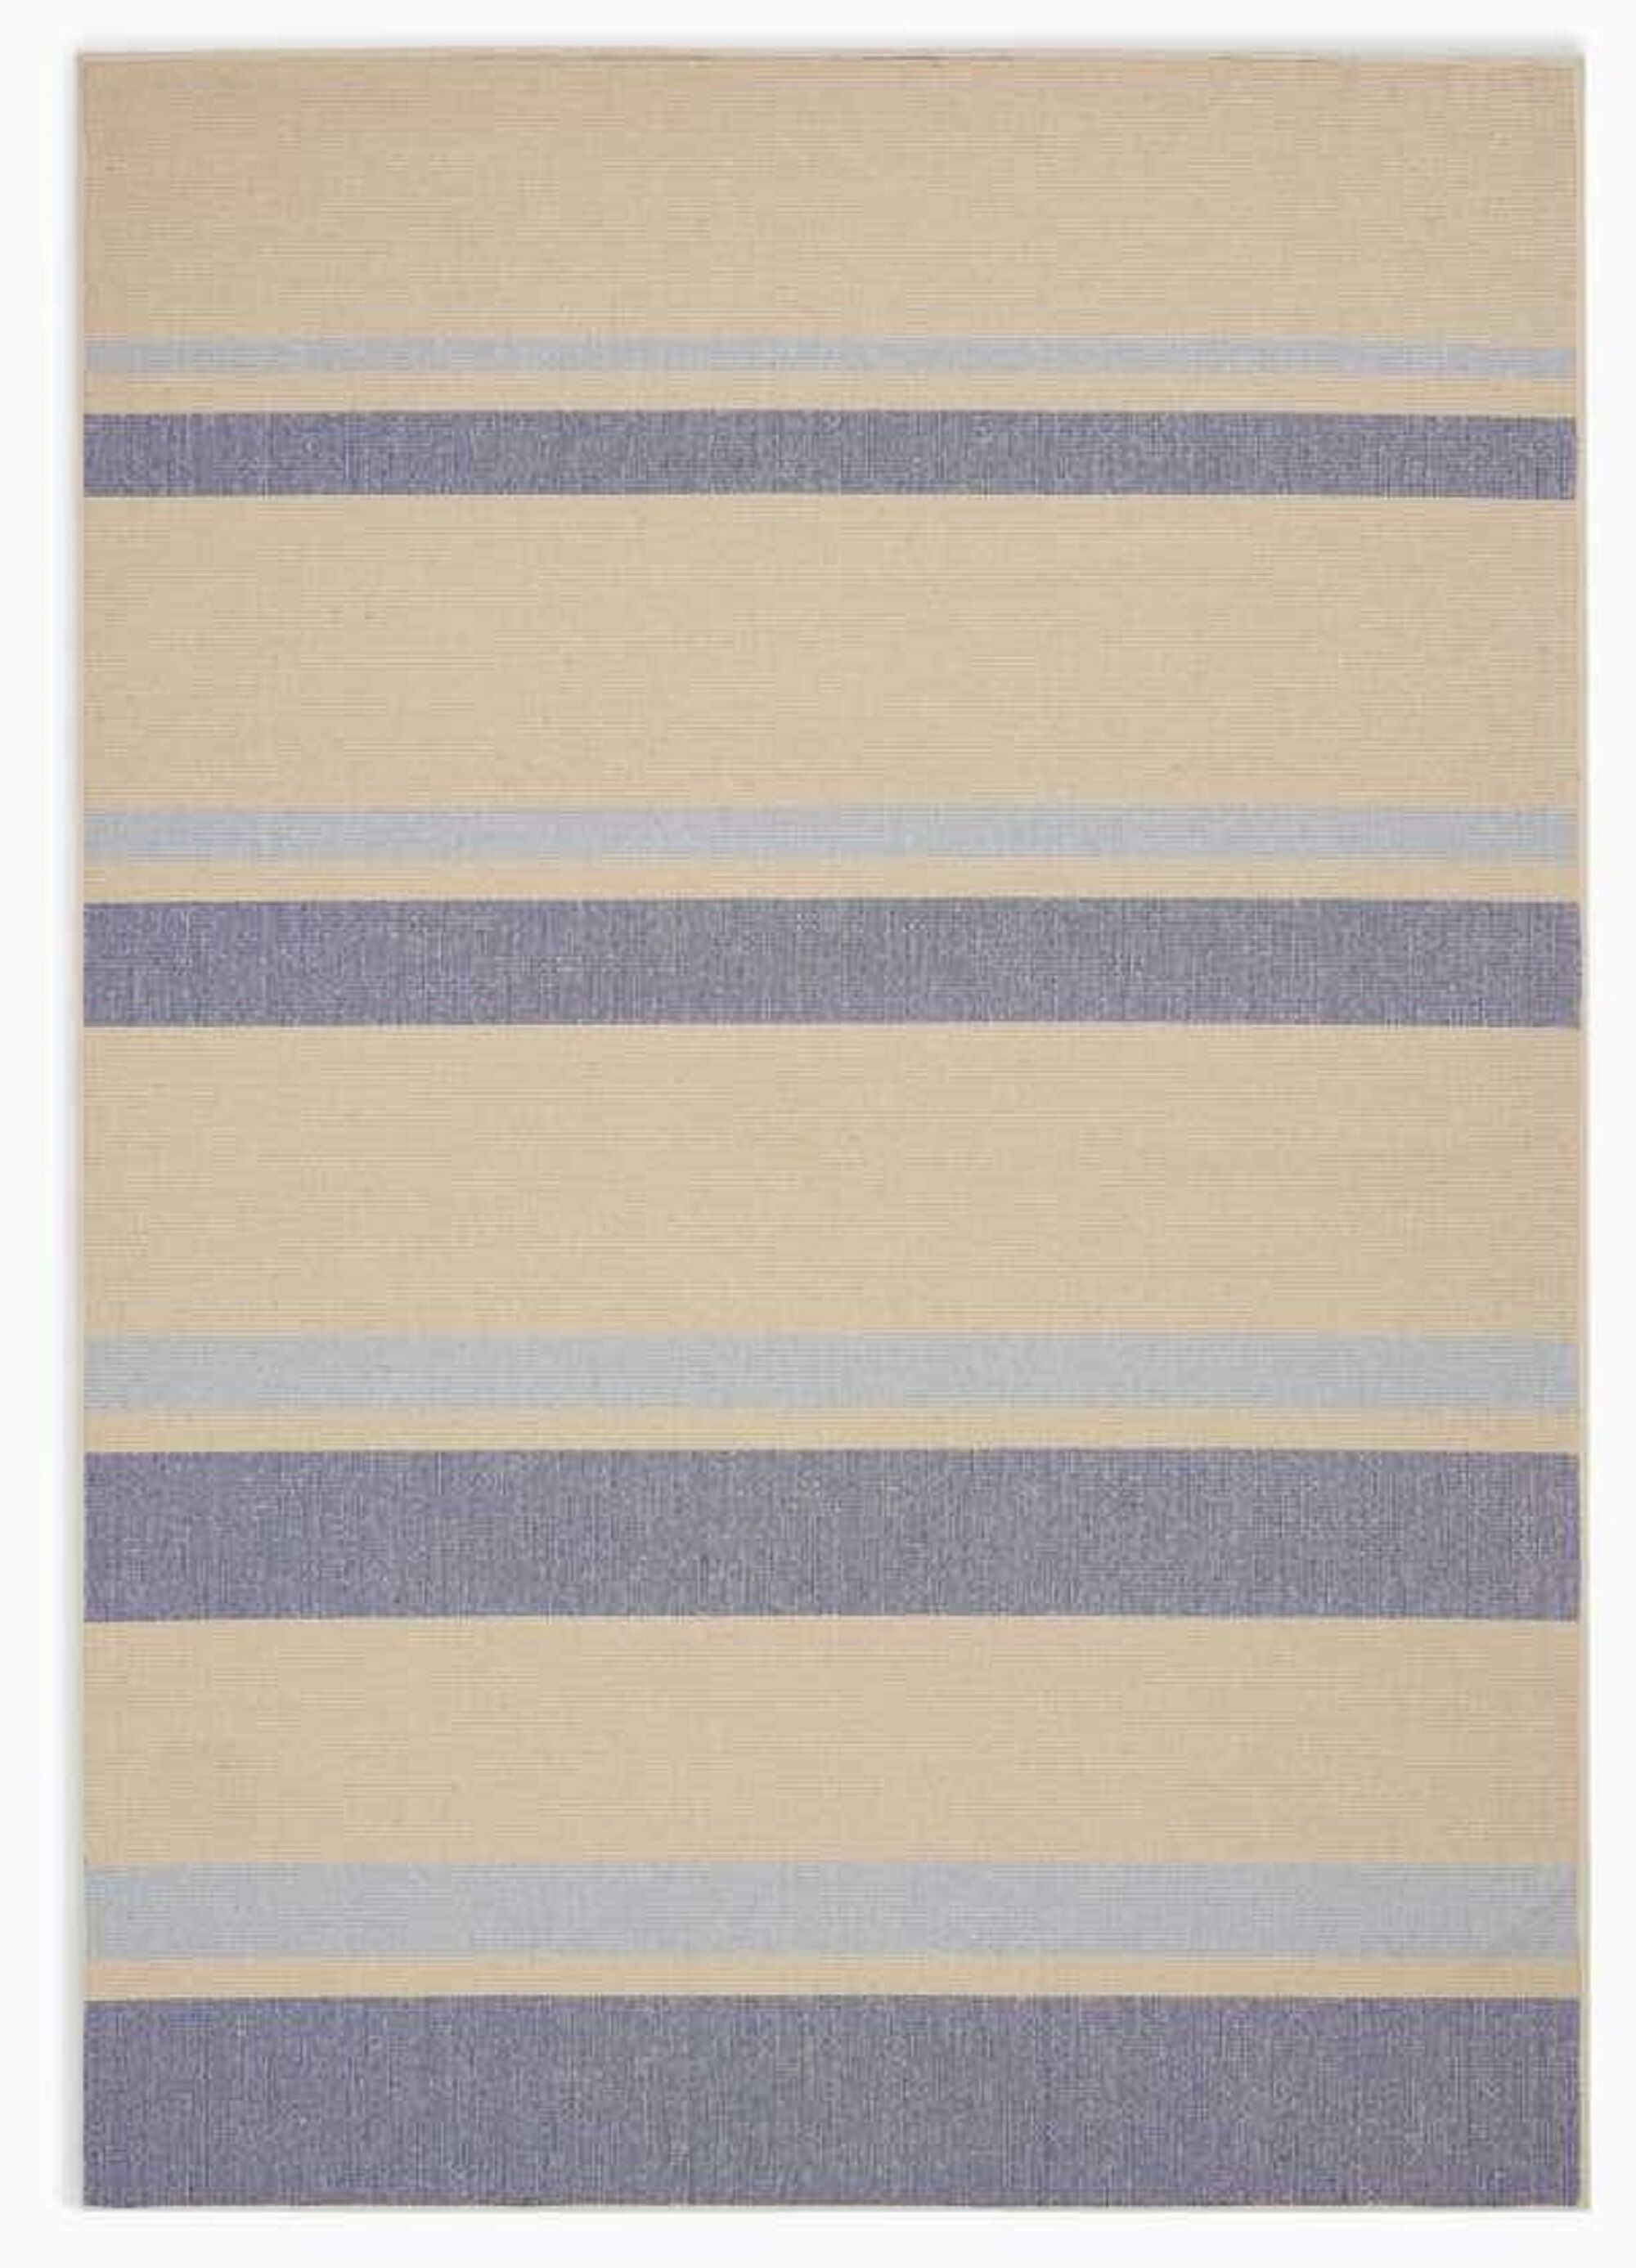 San Diego CK730 Striped Handwoven Flatweave Beige/Light Blue Area Rug Rug Size: Rectangle 5' x 7'